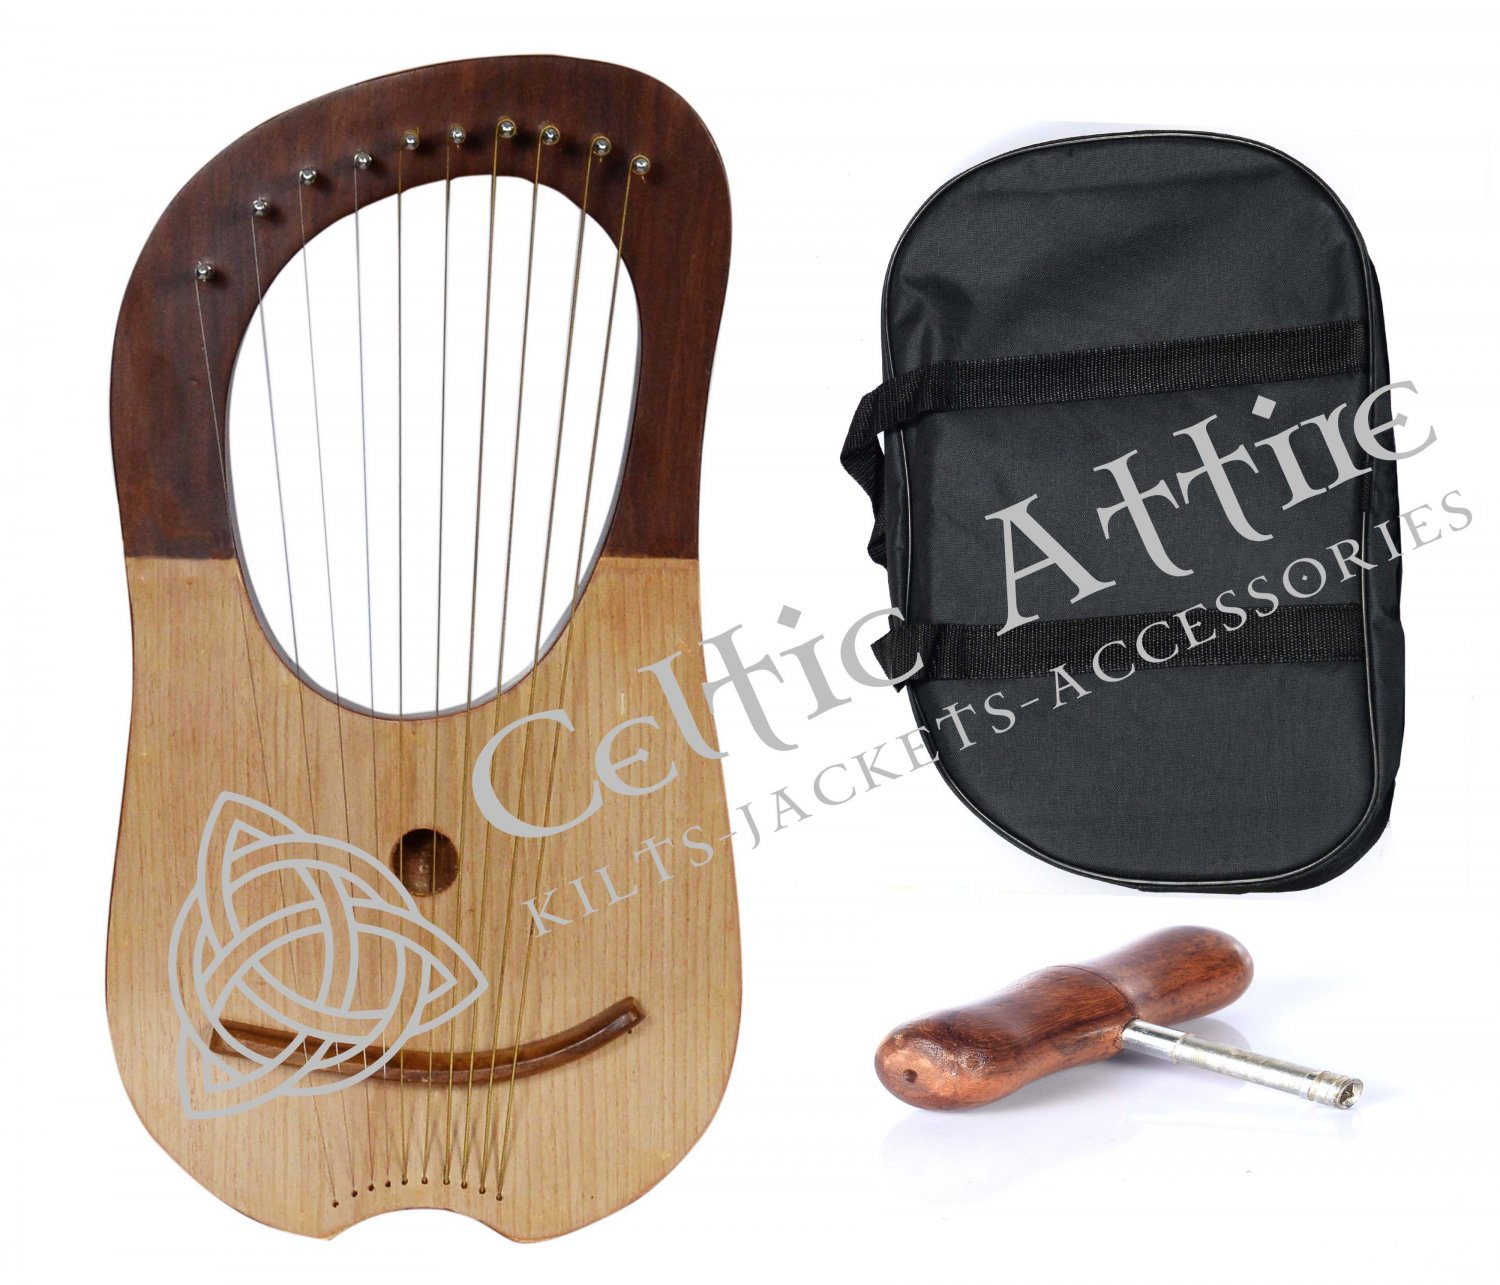 LYRE HARP 10 Metal Strings Rosewood Hand Engraved With Black Bag and Key